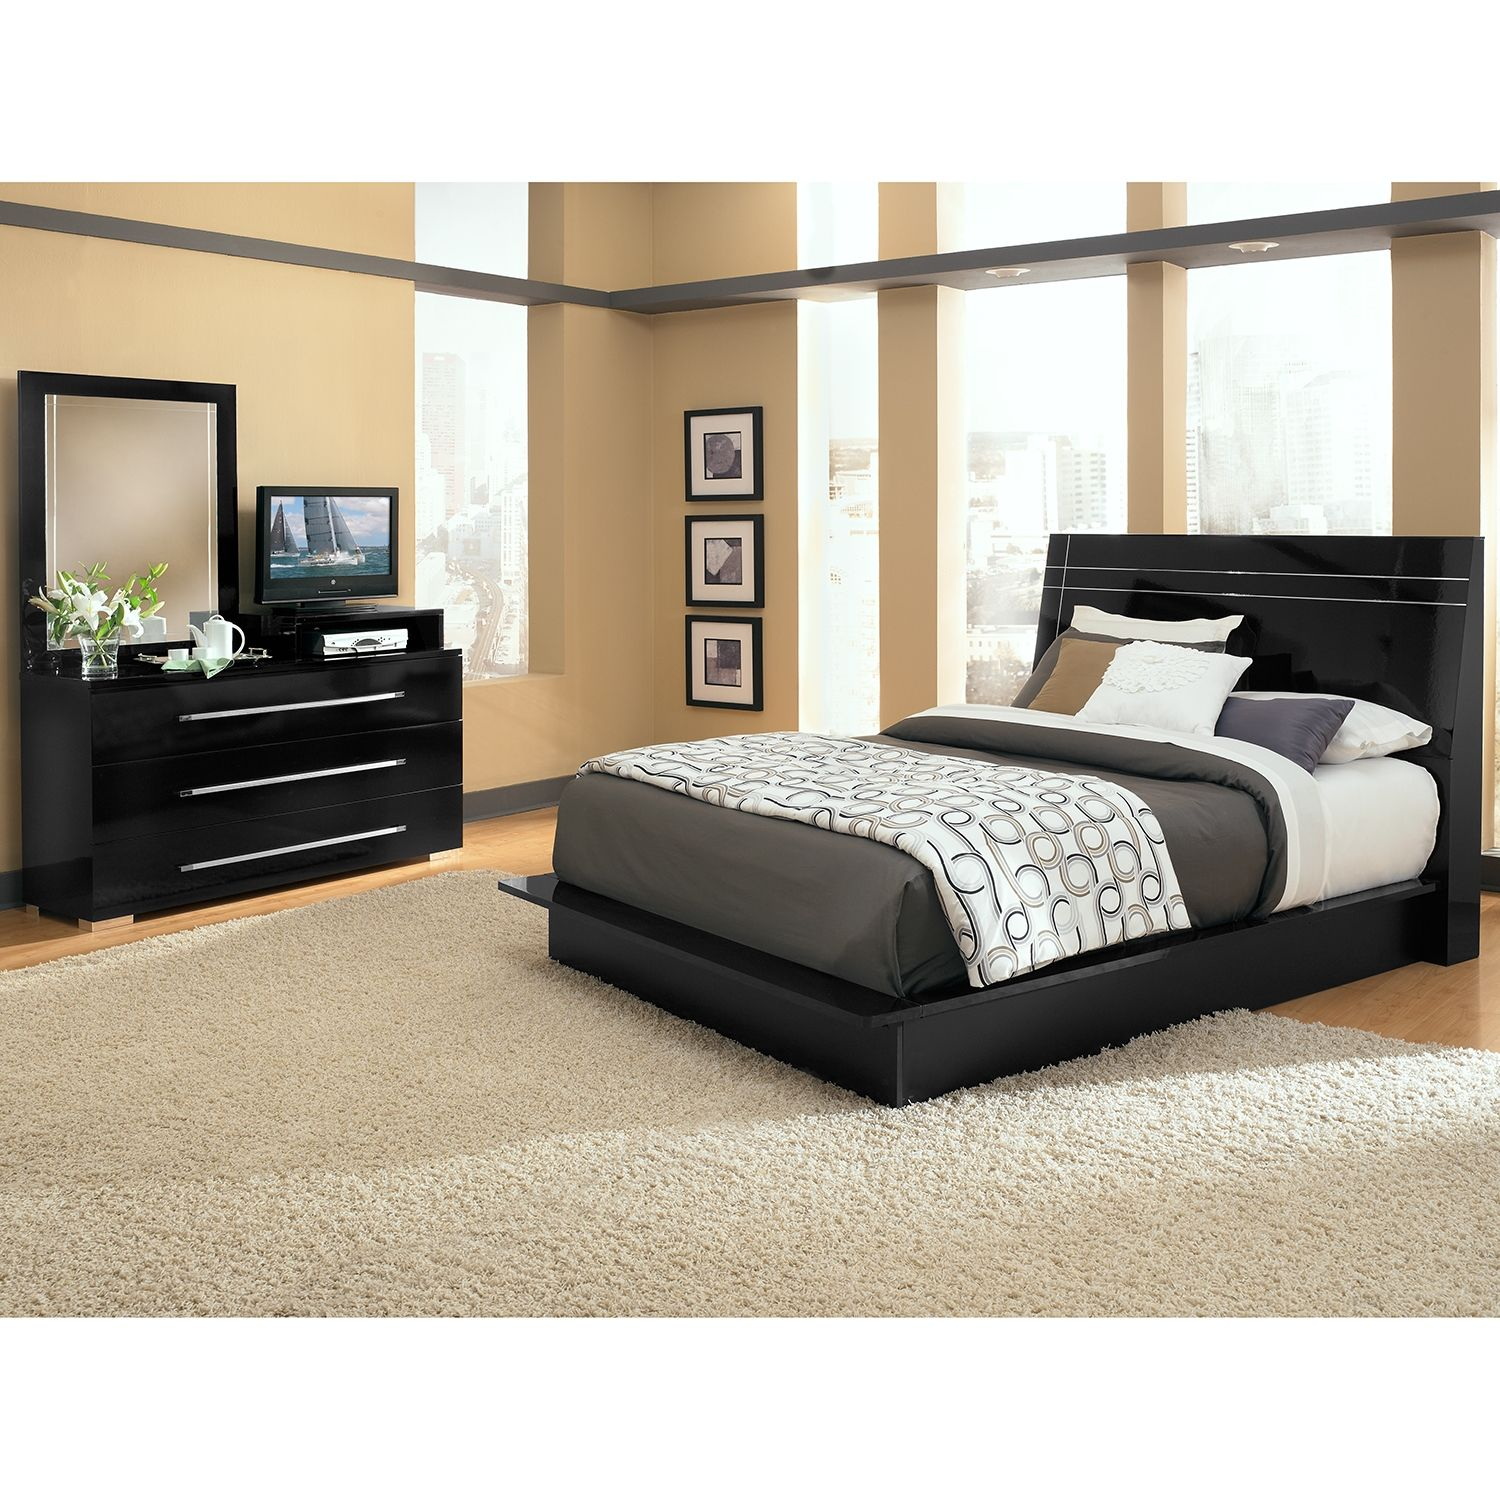 Dimora Black Ii 5 Pc Queen Bedroom Value City Furniture Cheap Bedroom Furniture Cheap Bedroom Furniture Sets Bedroom Sets